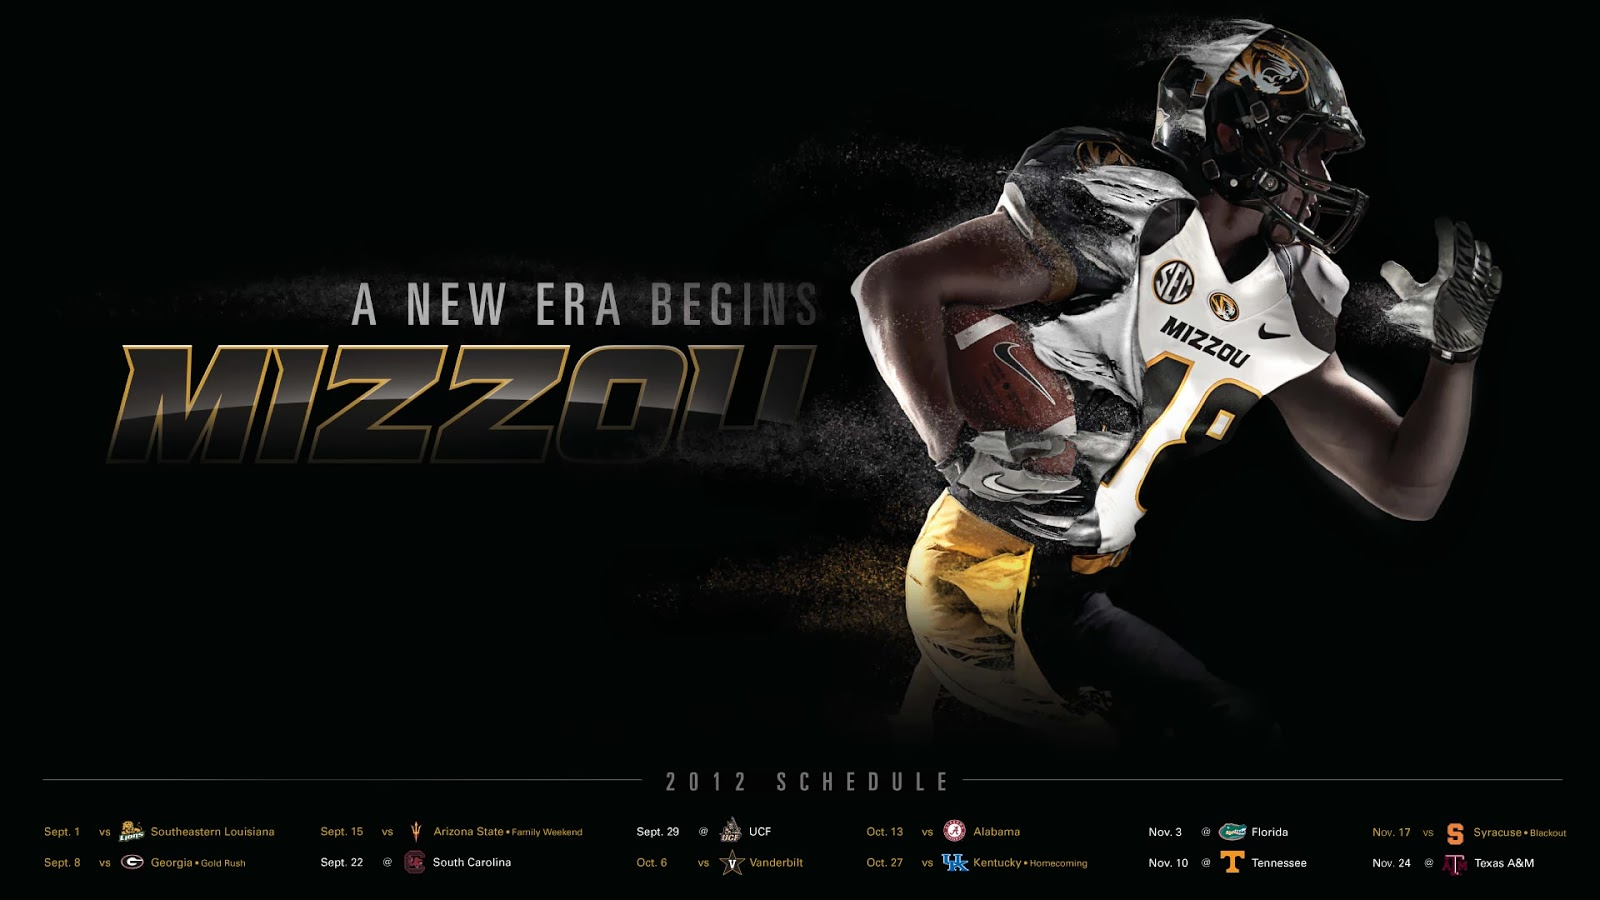 mizzou football wallpapers mizzou football wallpapers mizzou football 1600x900